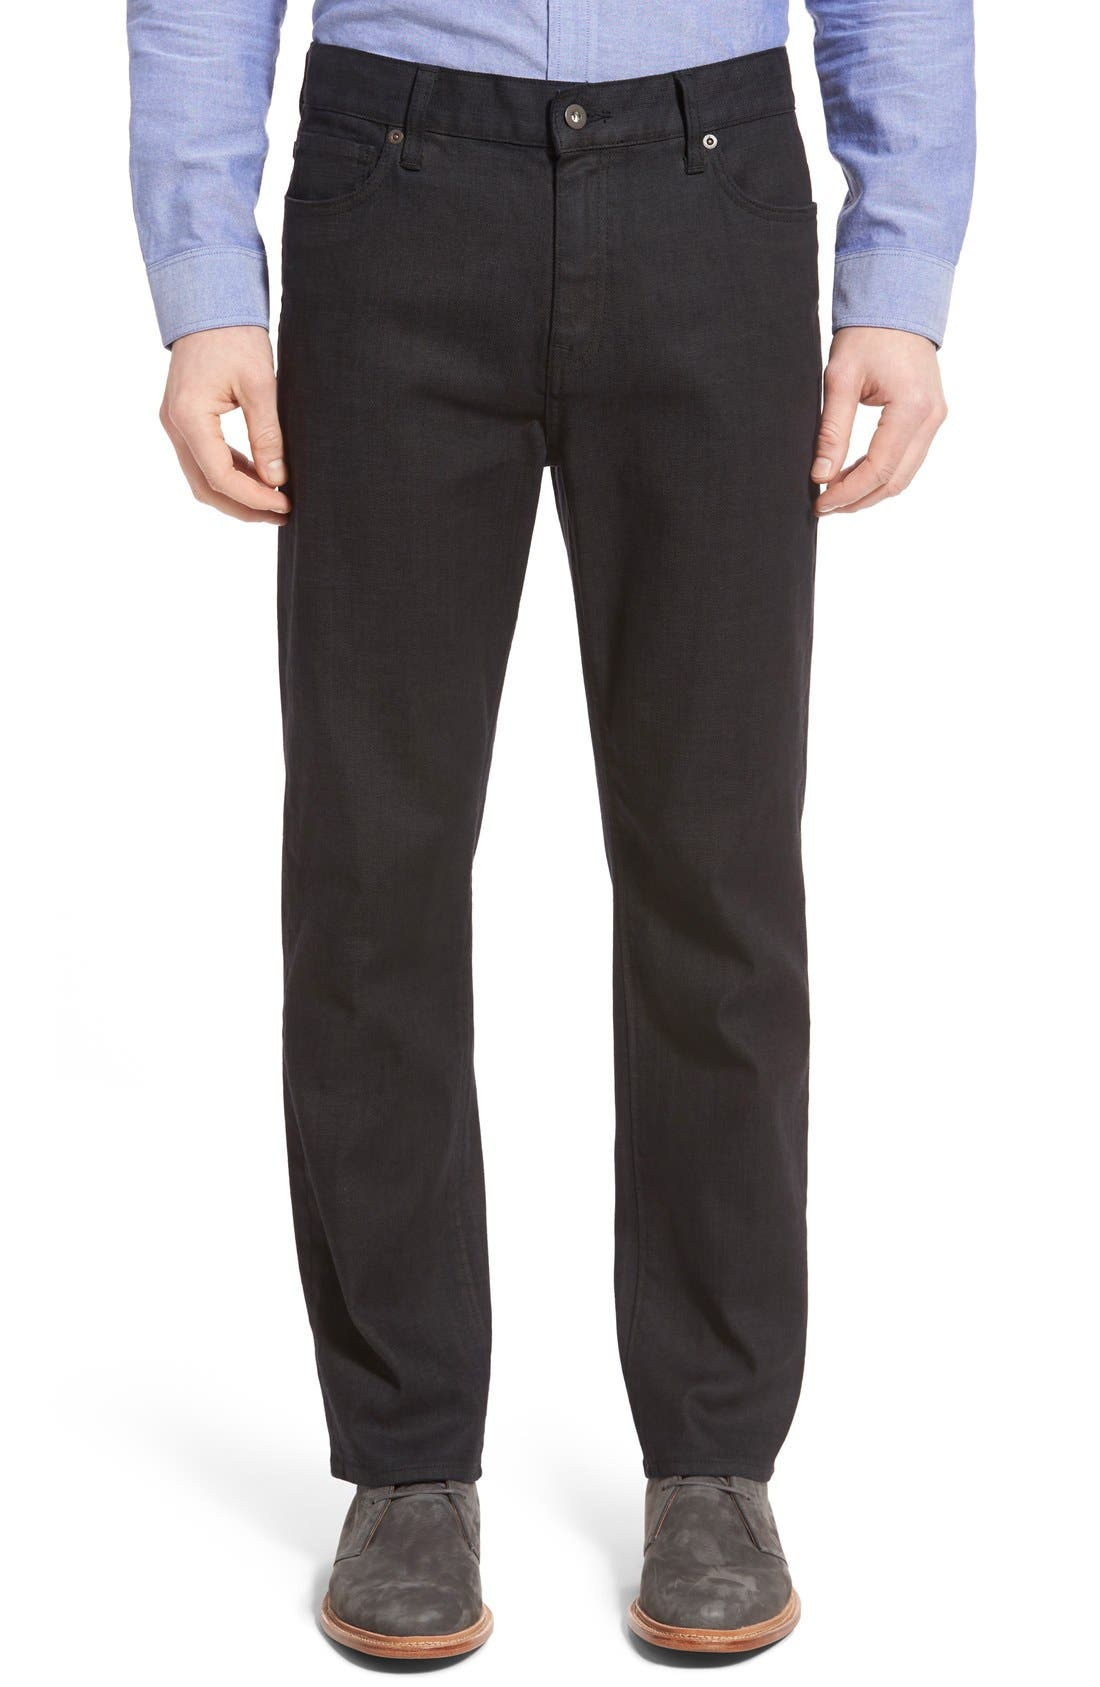 Greenwood Relaxed Fit Jeans